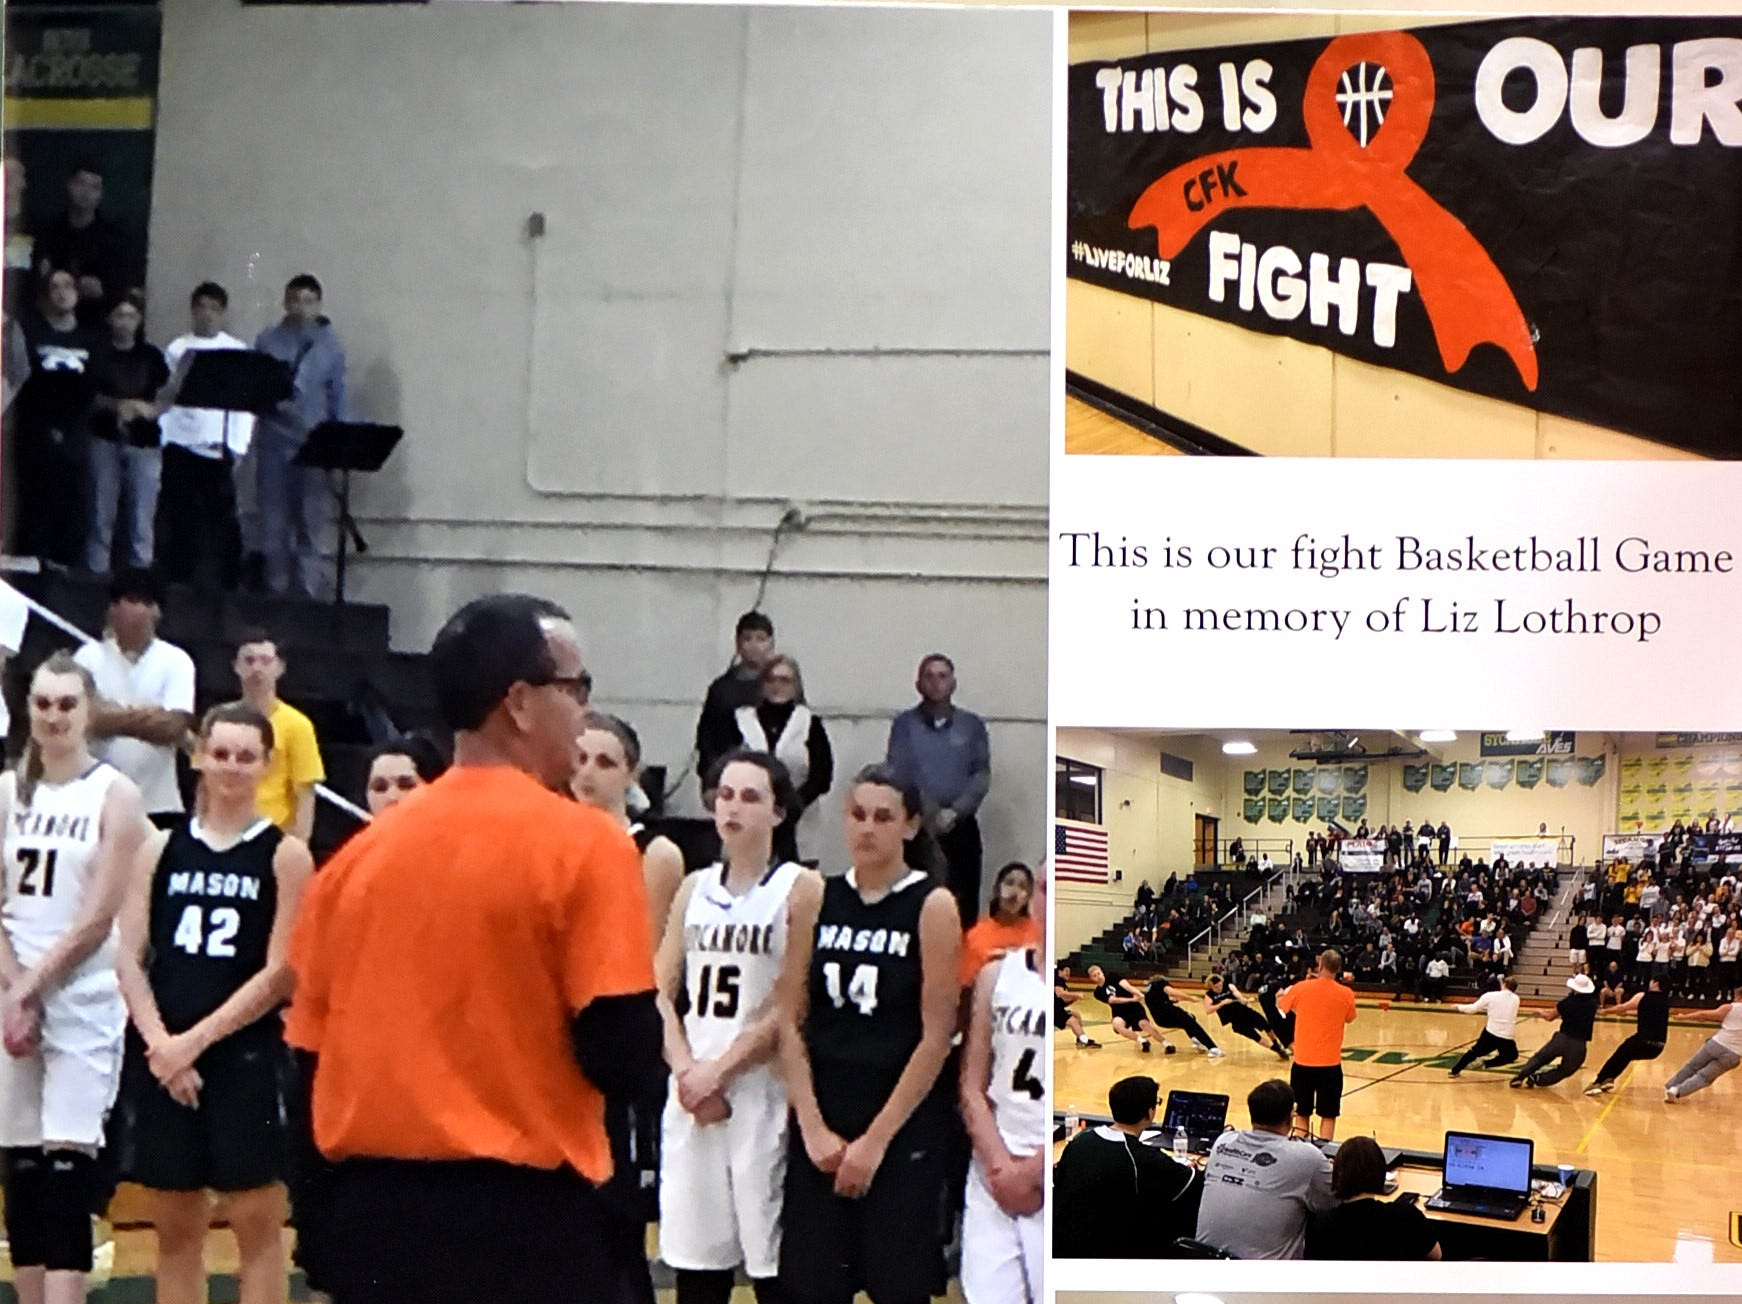 Time for the 3rd Annual Live for Liz Fight For Cancer Free Kids Basketball Game, February 1, 2019.